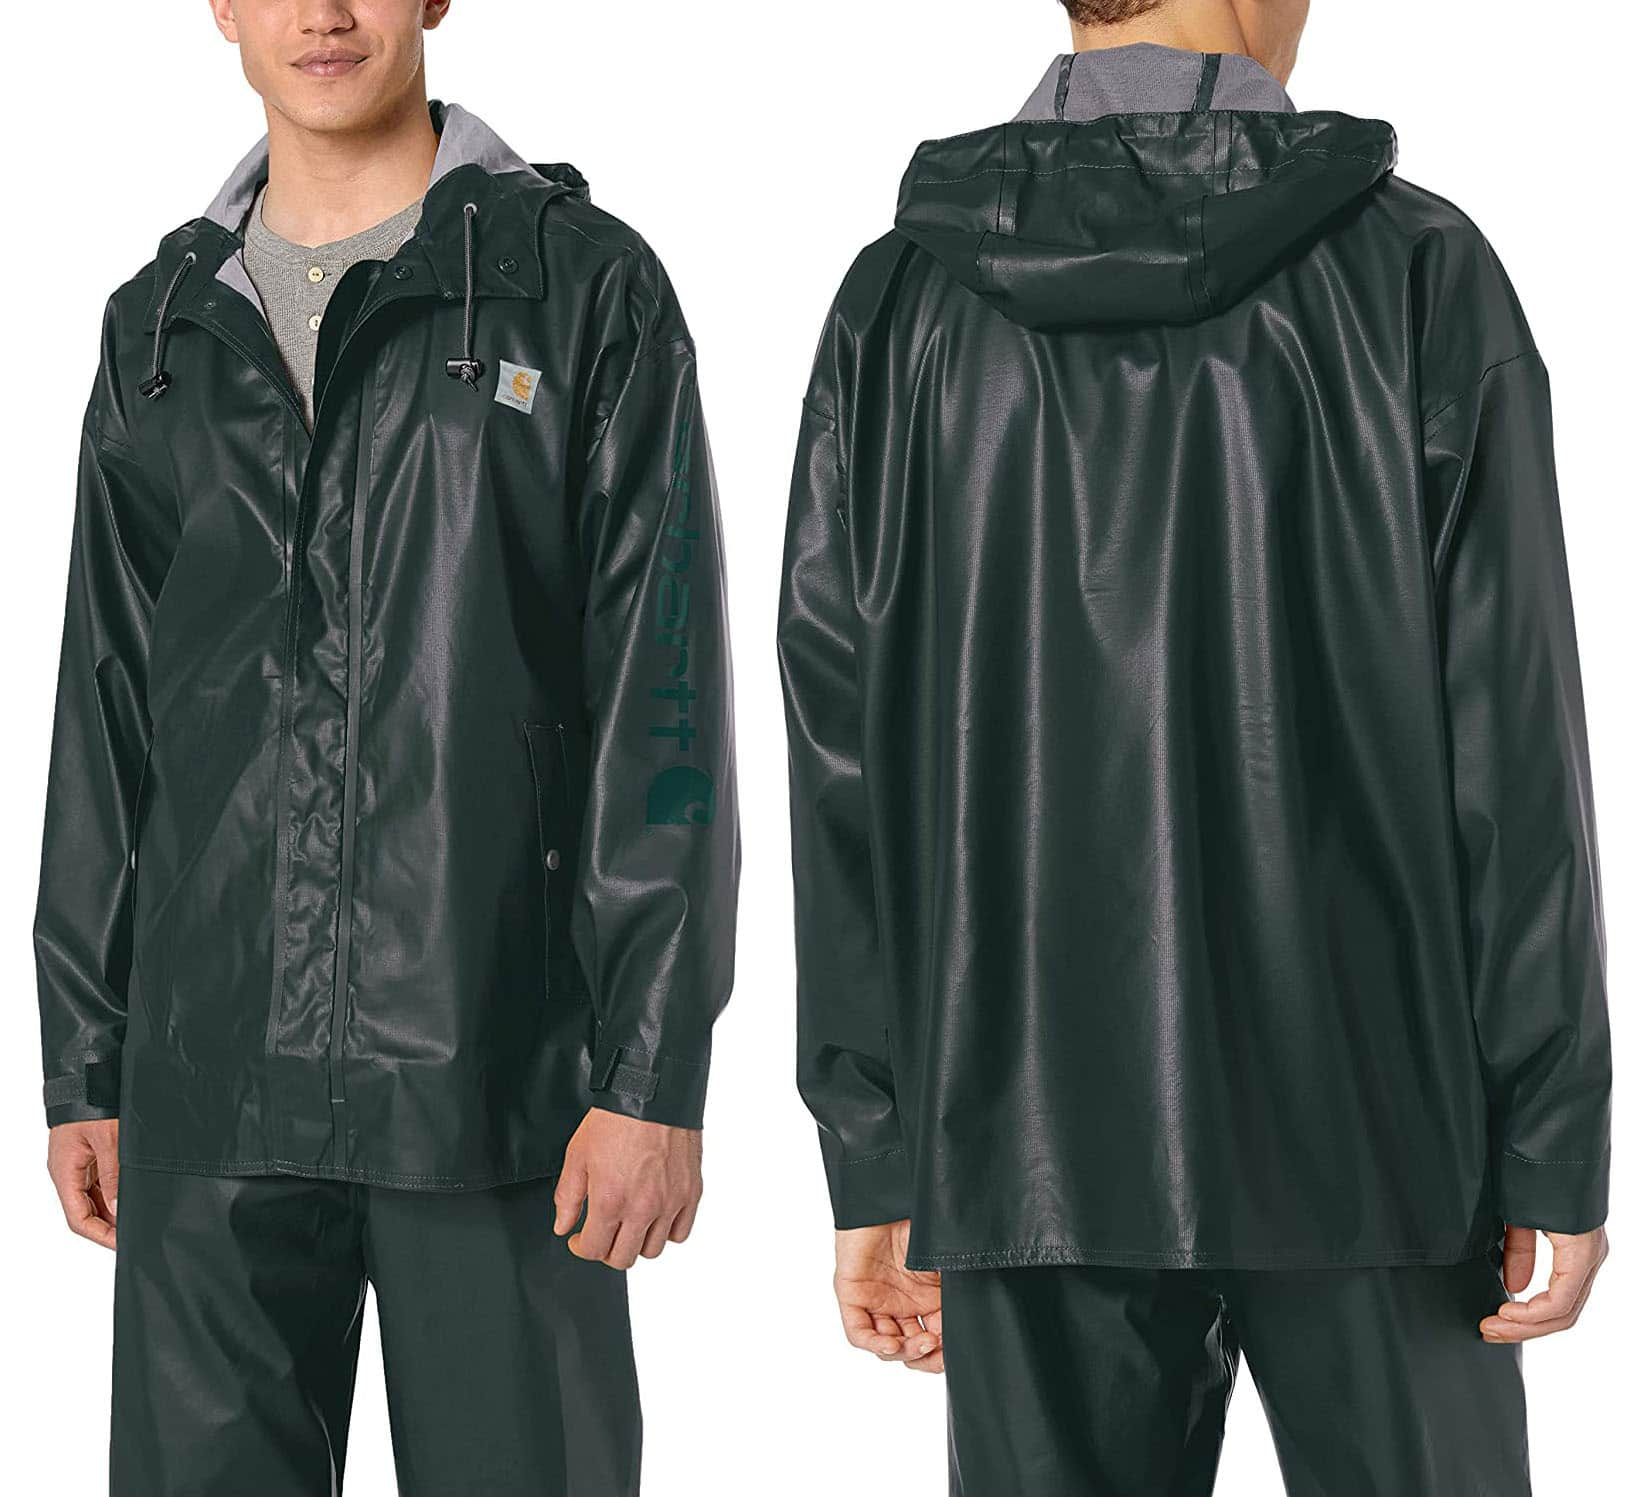 Designed for heavy rains, this Carhartt jacket guarantees full coverage and lightweight comfort with its waterproof shell comprised of 0.35 mm 92% polyethylene and 8% vinyl acetate